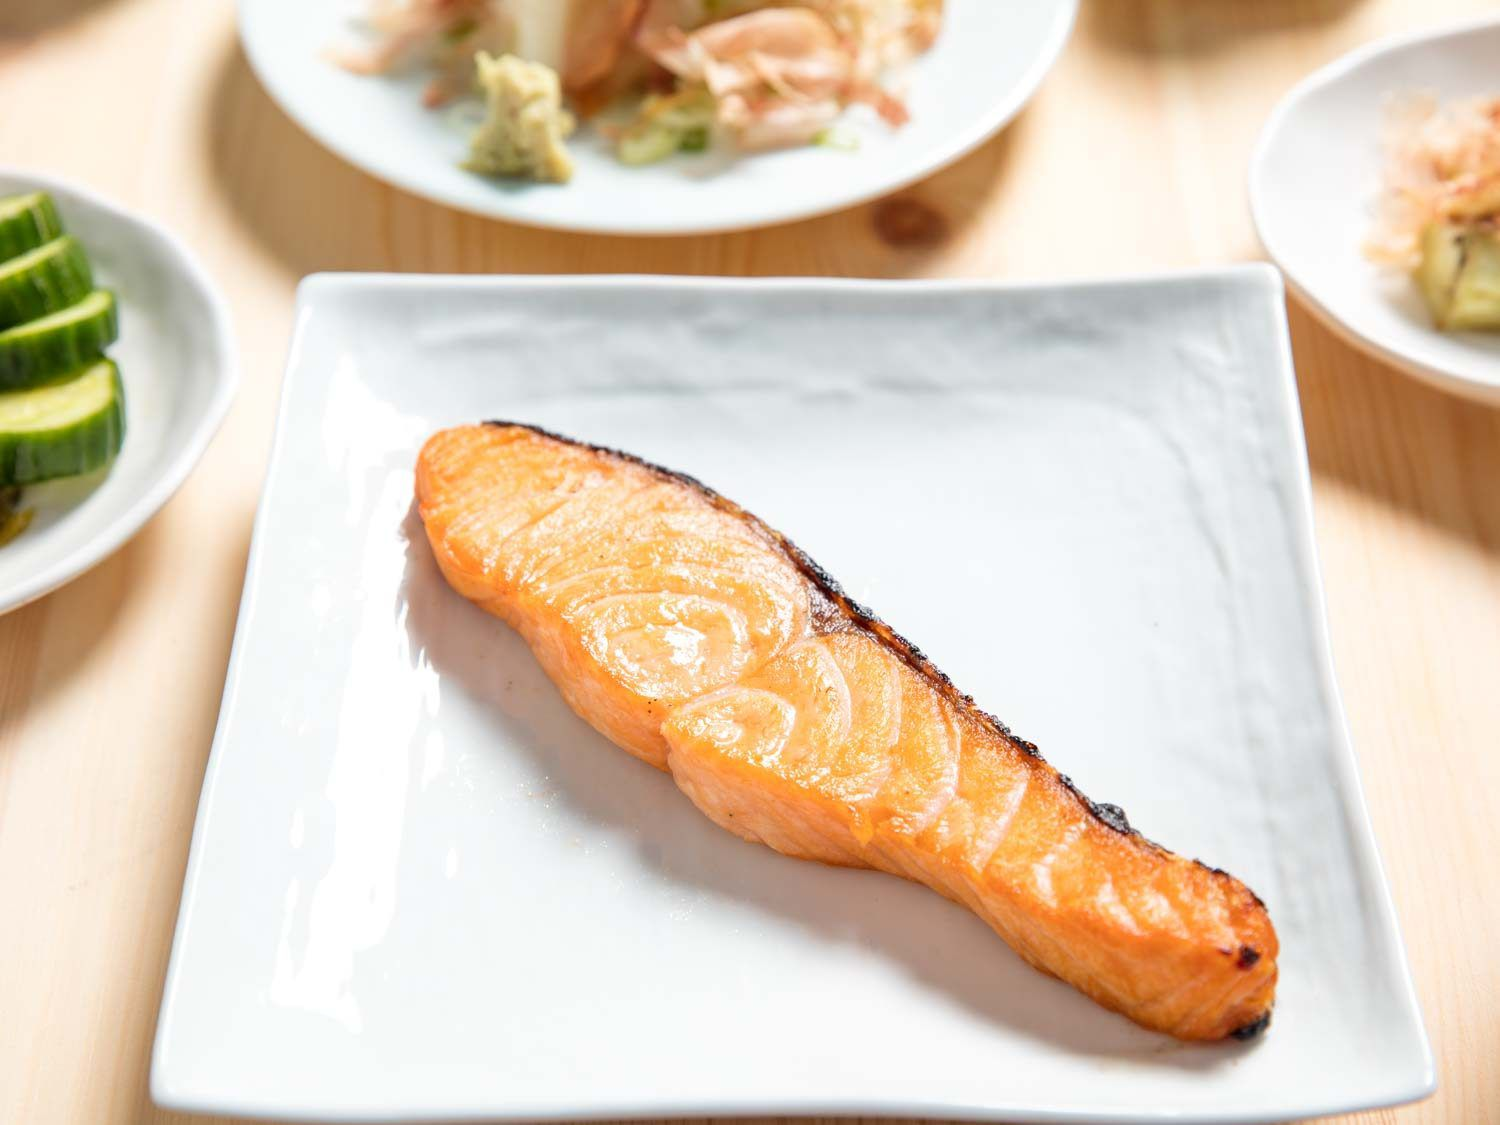 A piece of broiled salted salmon on a white plate